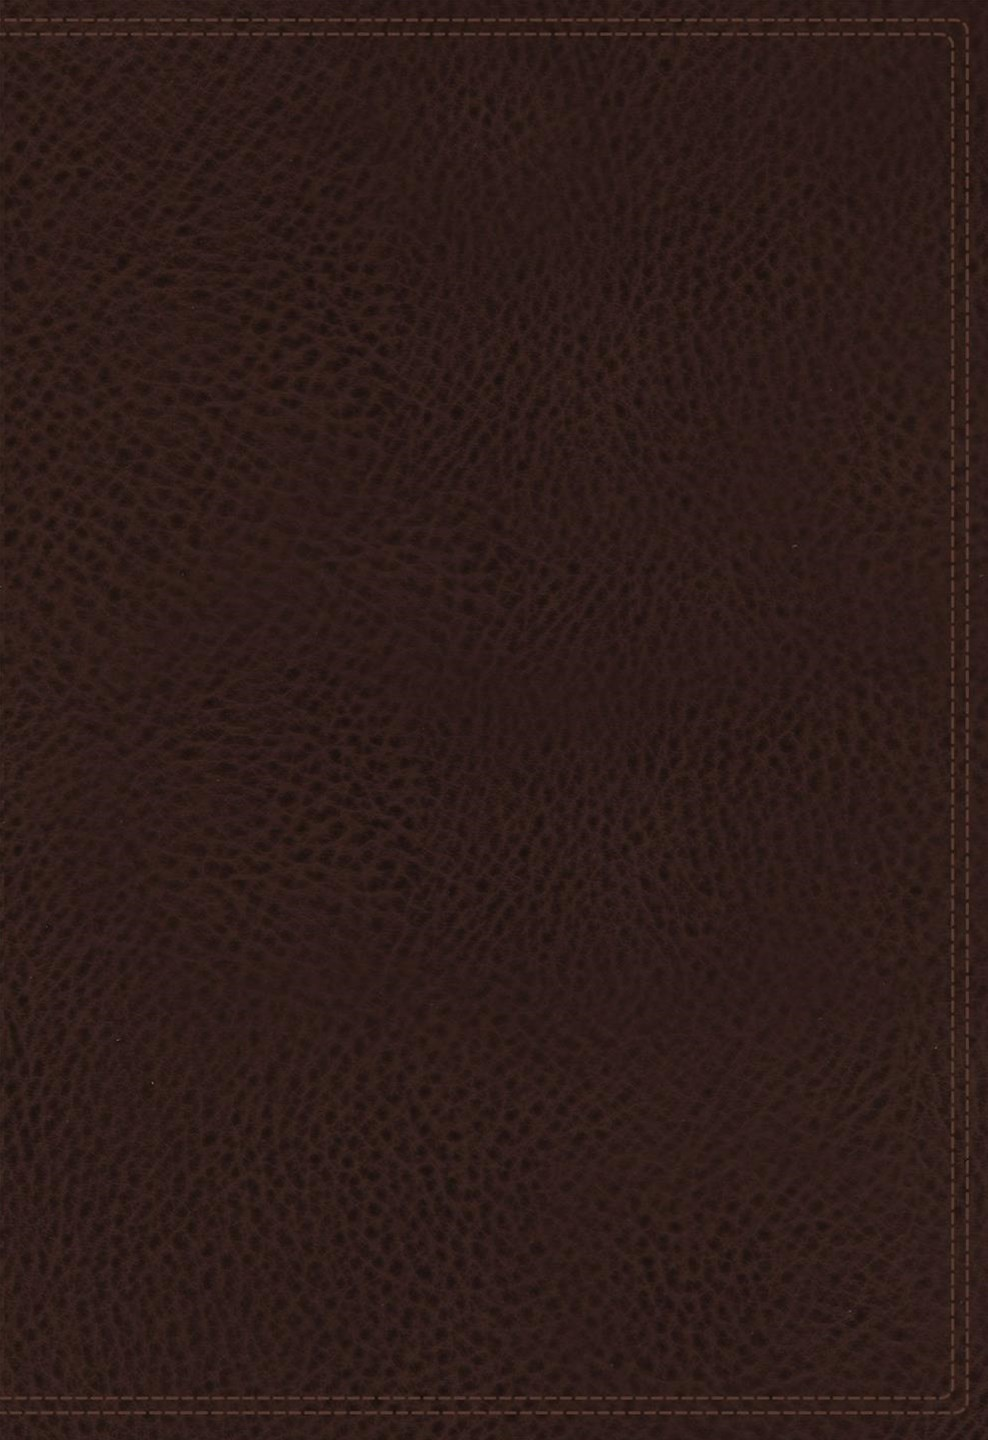 NKJV The Vines Expository Bible [Brown]